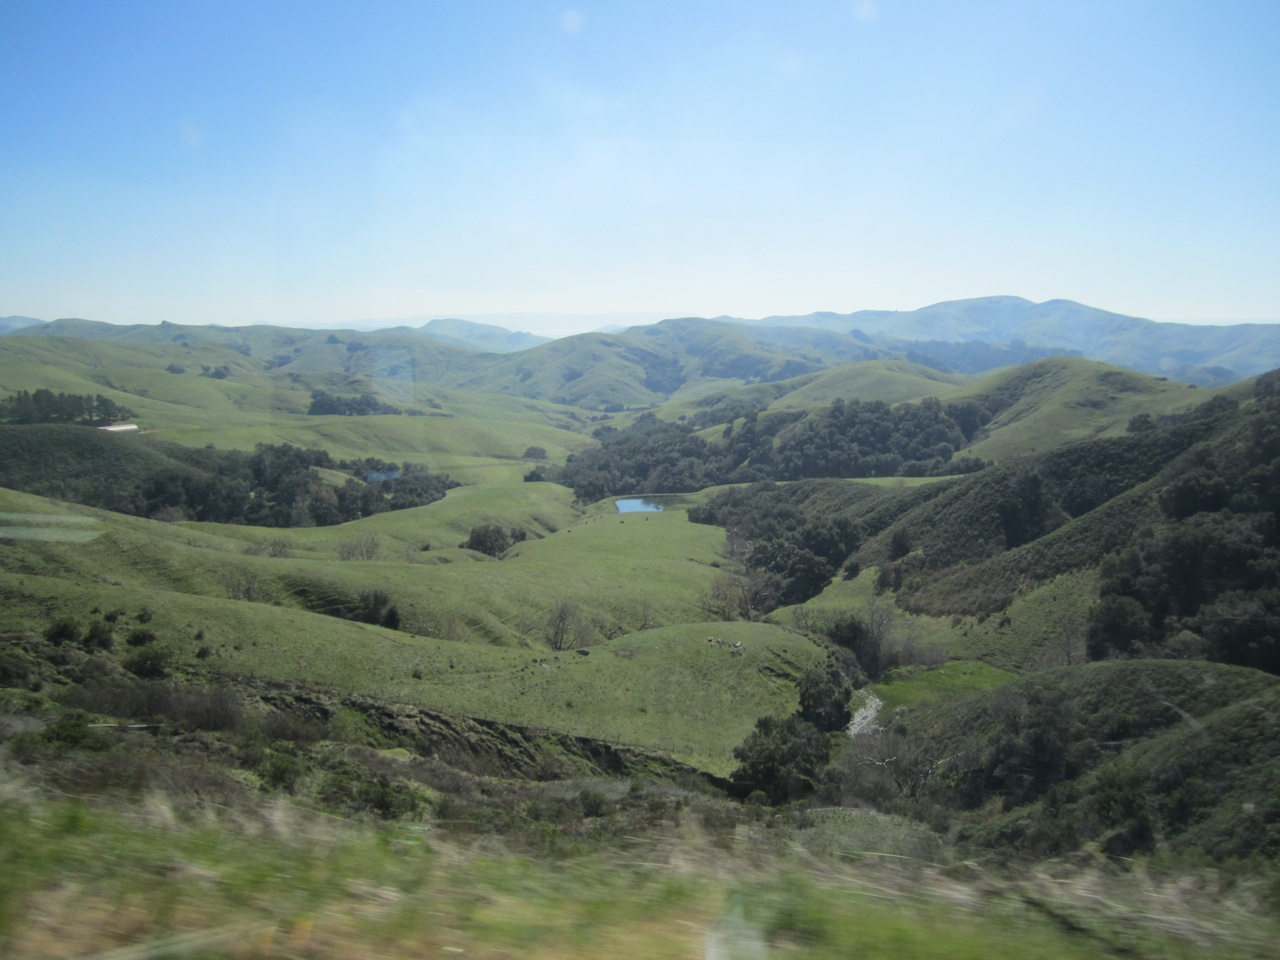 Route 46, One Of The Roads On Our Way To Pacifica, CA